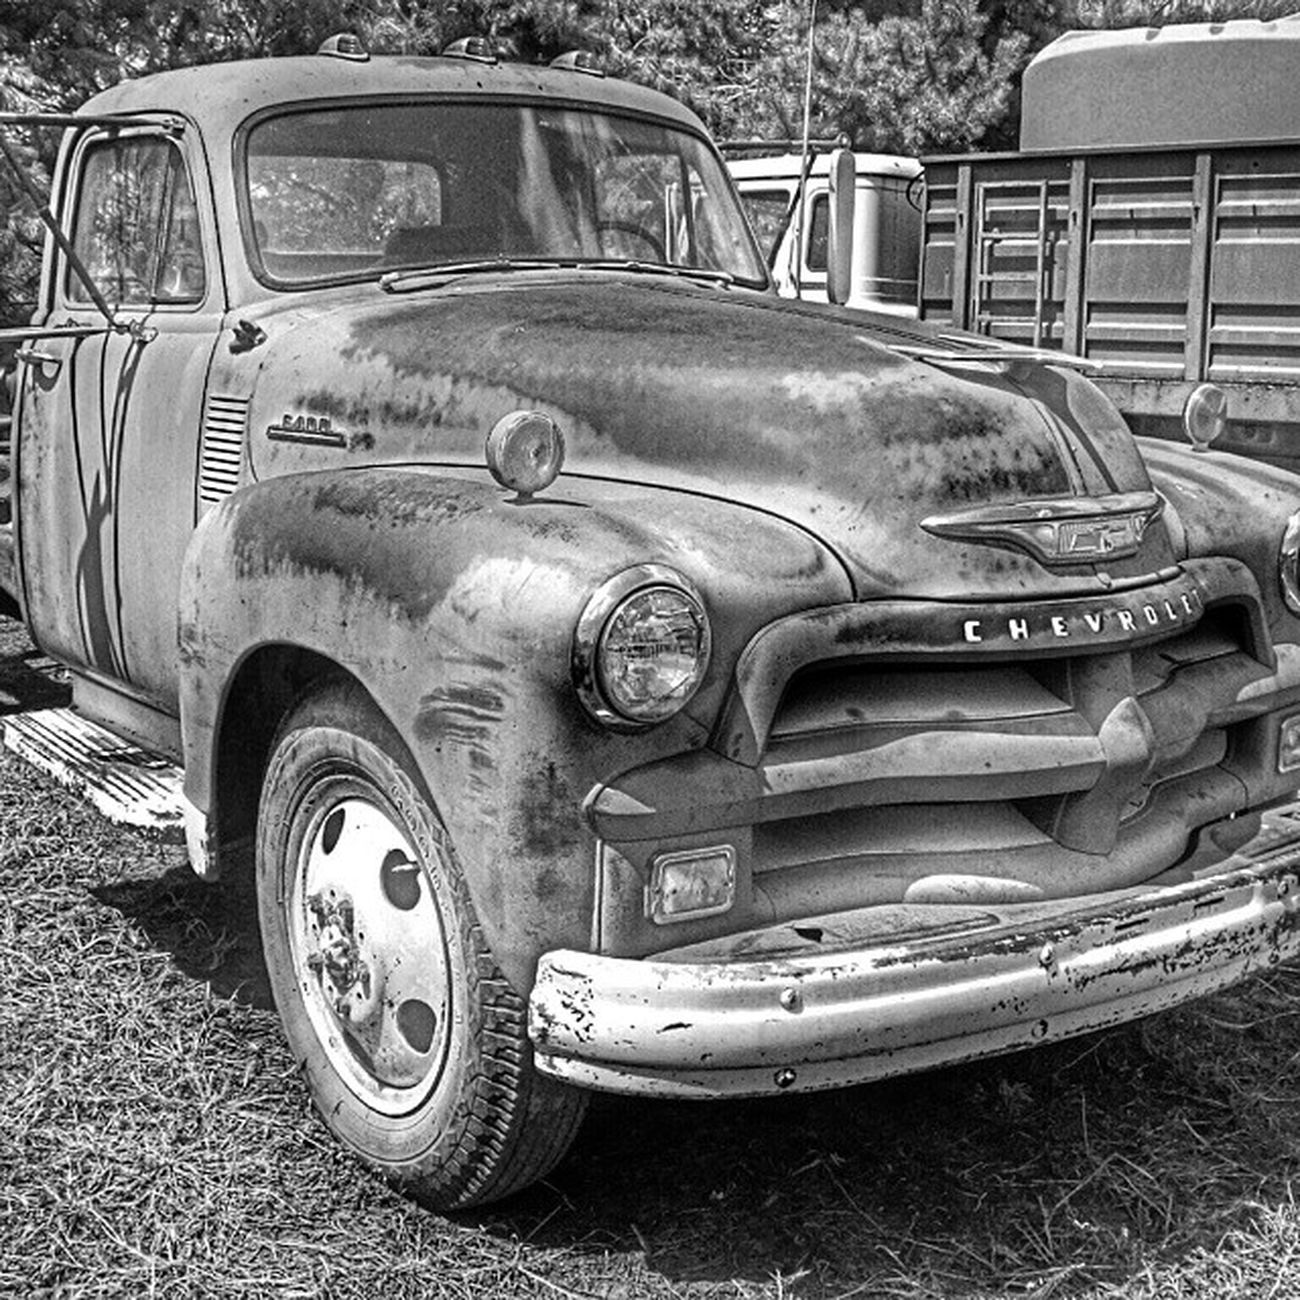 1950 CHEVROLET Trb_bnw Trb_autozone Autos_of_our_world Autoshow car_czars car_crests bnw_life bpa_bnw bpa_hdr hdr_transport jj_transportation jj_unitedstates rustlord_carz shutterbug_collective roadwarrior_hdr roadwarrior_dispatch dirtmerchantautos igcars ic_wheels ptk_vehicles splendid_transport tv_hdr ipulledoverforthis loves_transports hitandgrunge igaa g_s_i rlord_bnw_carz_wheelz